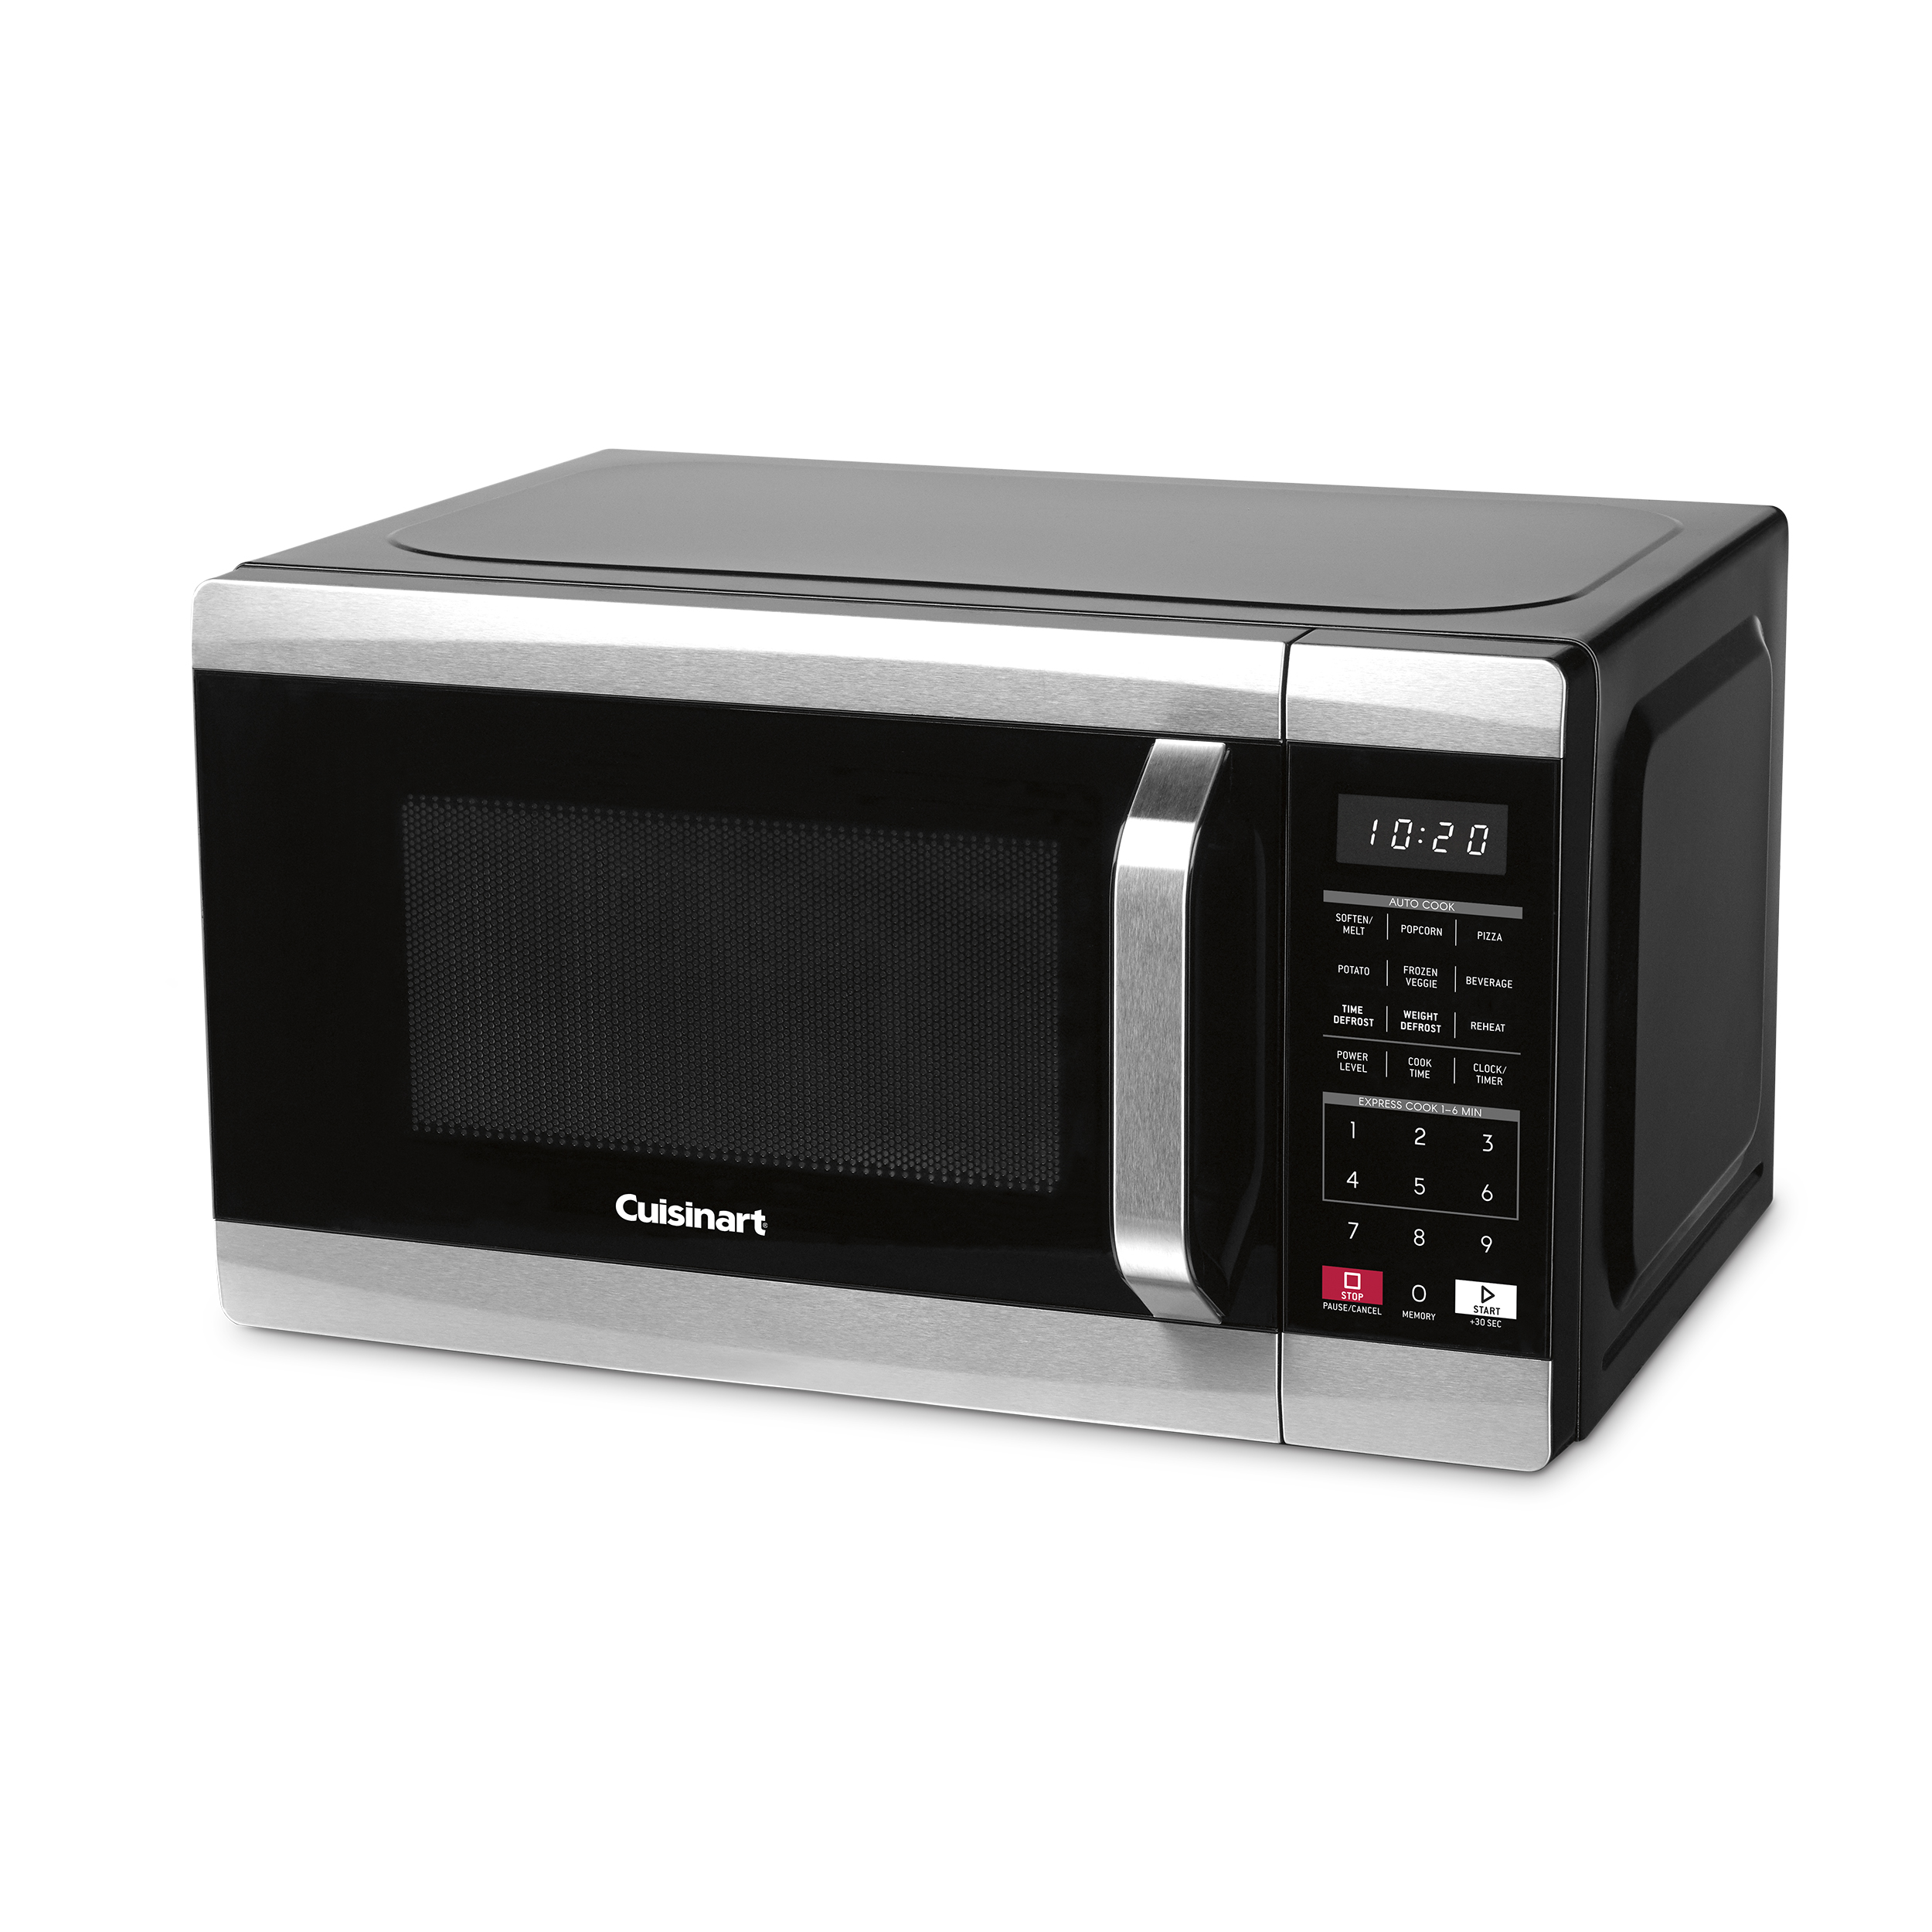 cuisinart microwaves stainless steel microwave oven